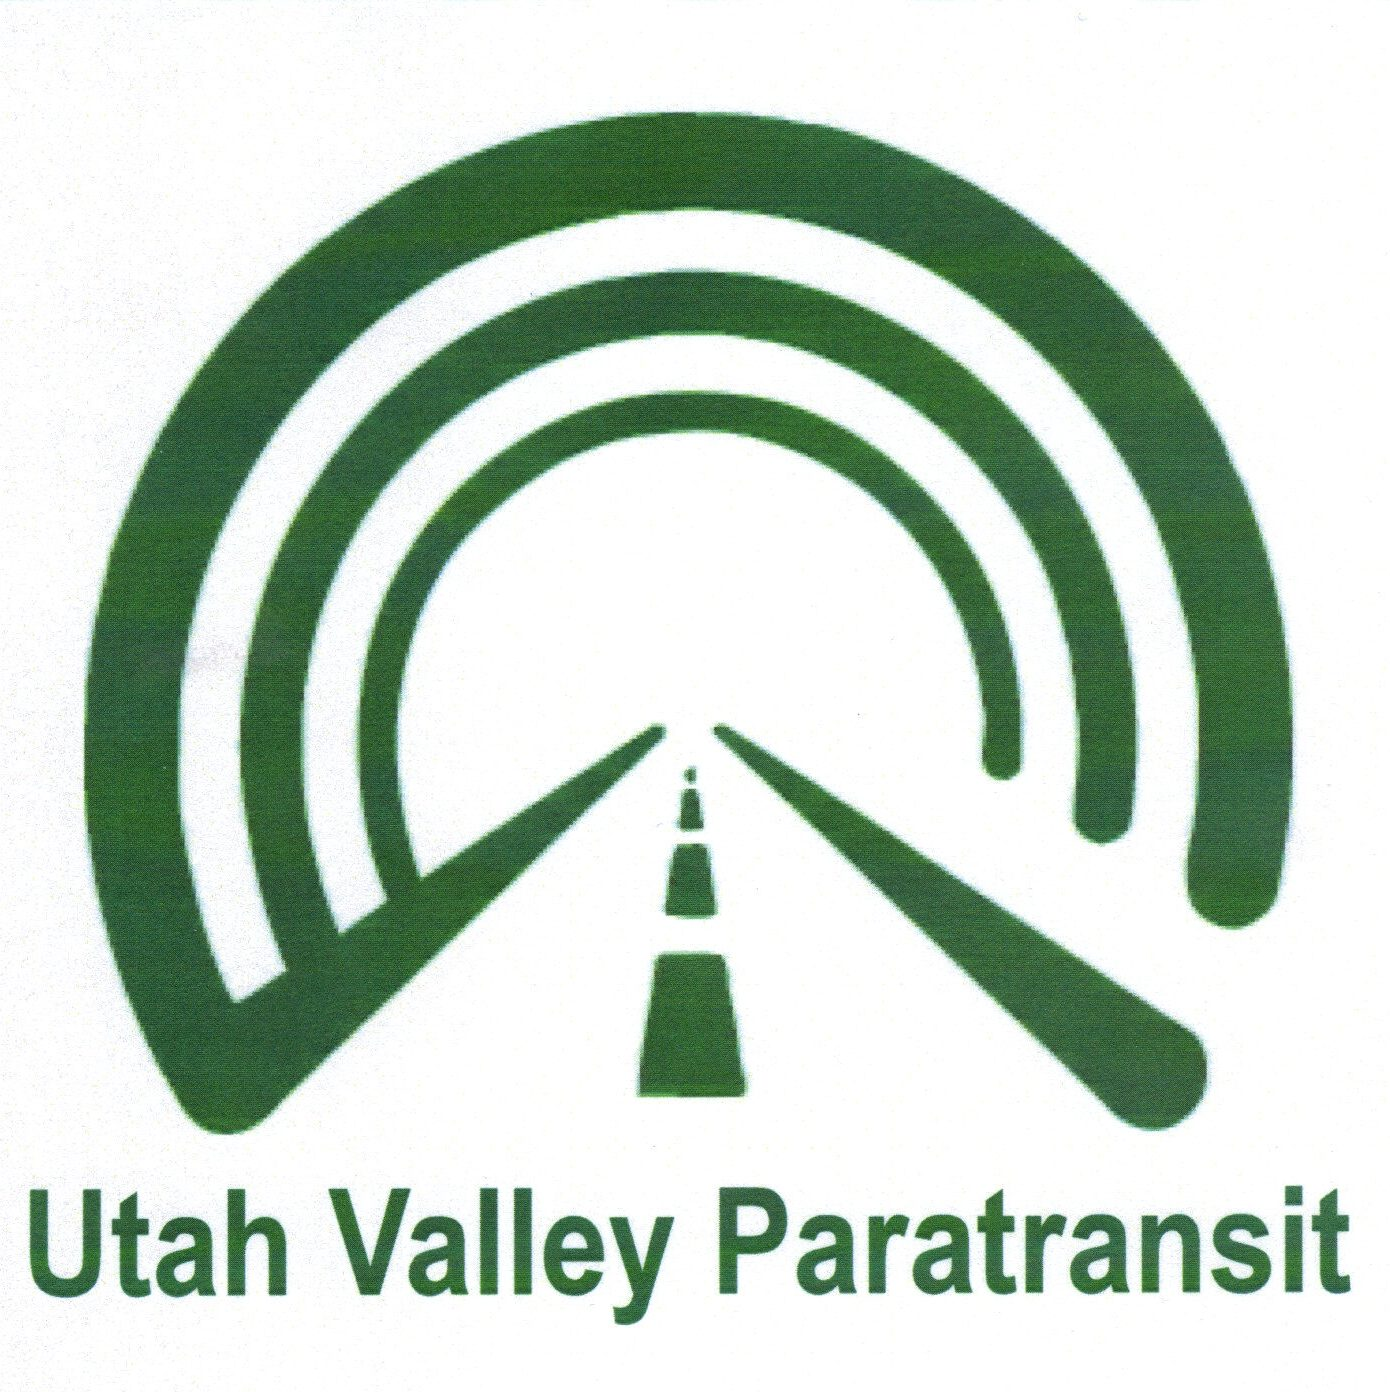 Utah Valley Paratransit